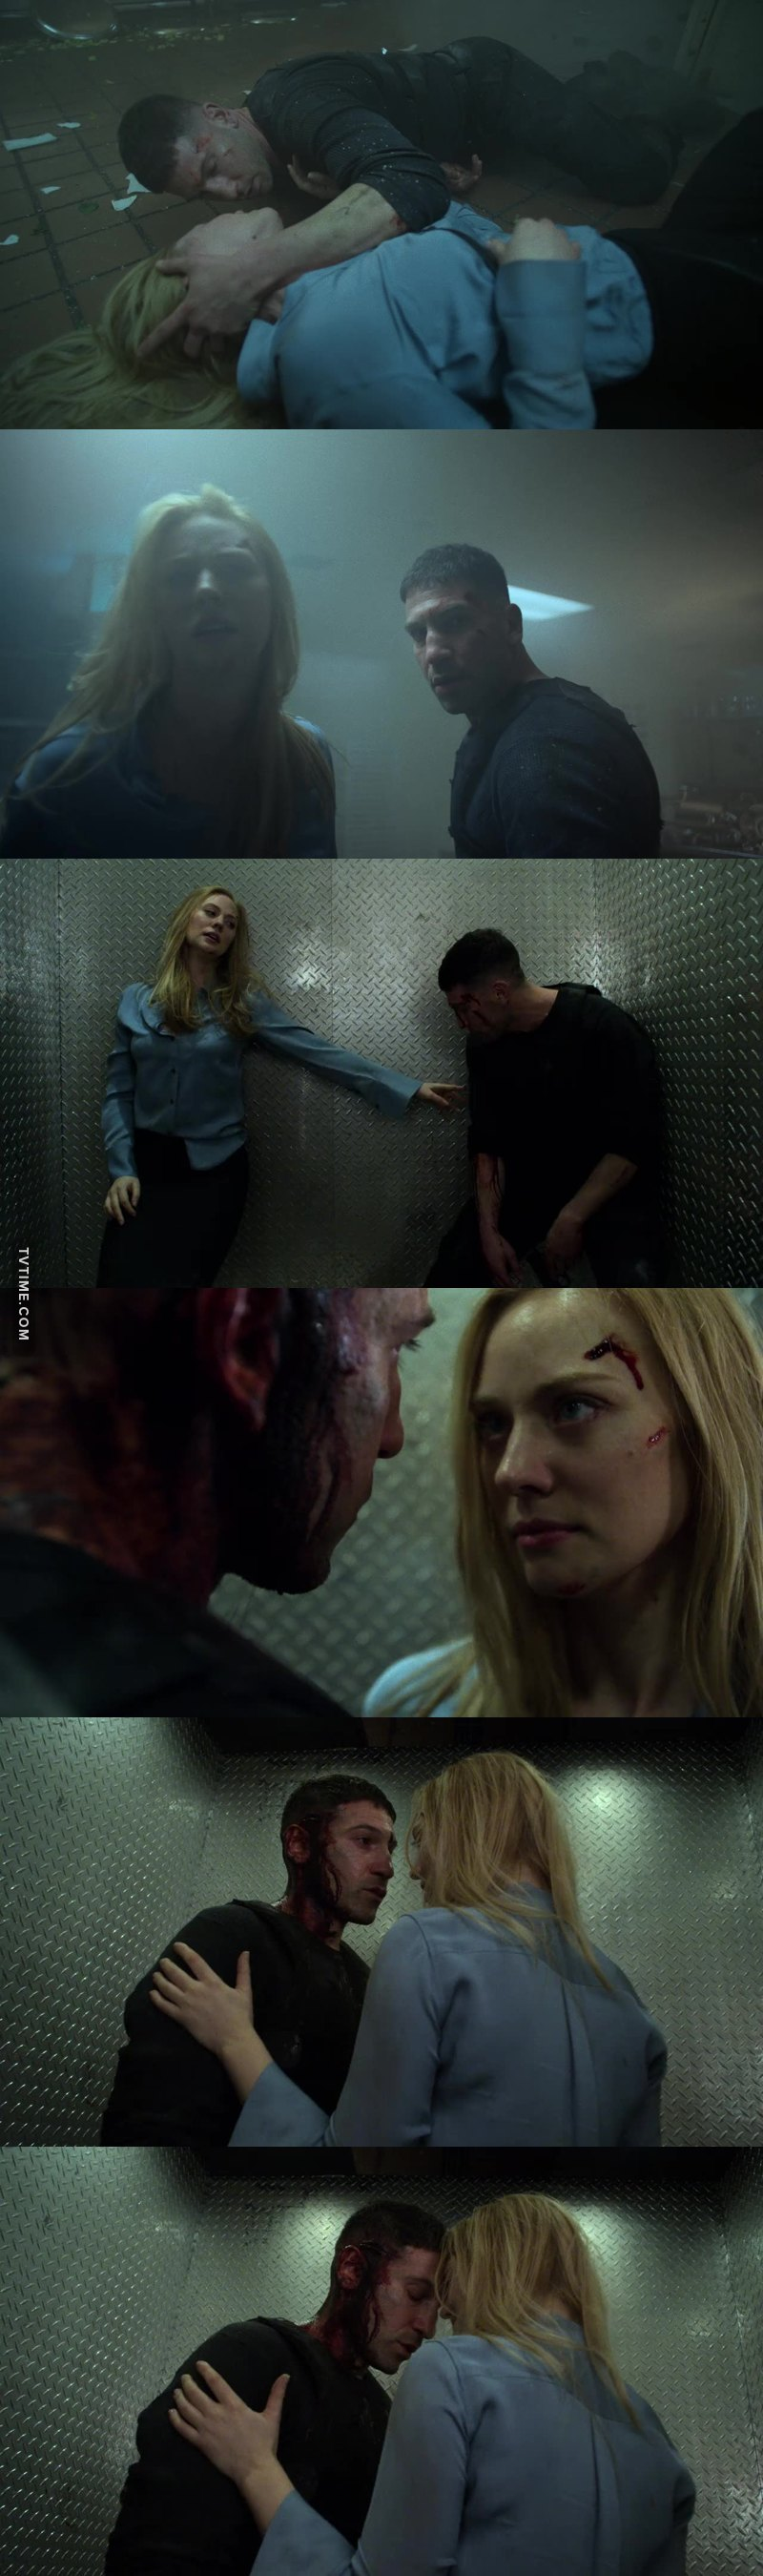 KISS!!! Honestly though who knew FRANK CASTLE & KAREN PAGE, characters who'd never met in the comics as far as I know, would end up being the most compelling Marvel Netflix pairing ❤️. The actors' chemistry is one thing (off the charts btw), but these characters in this incarnation make sense together. I love it... 😍